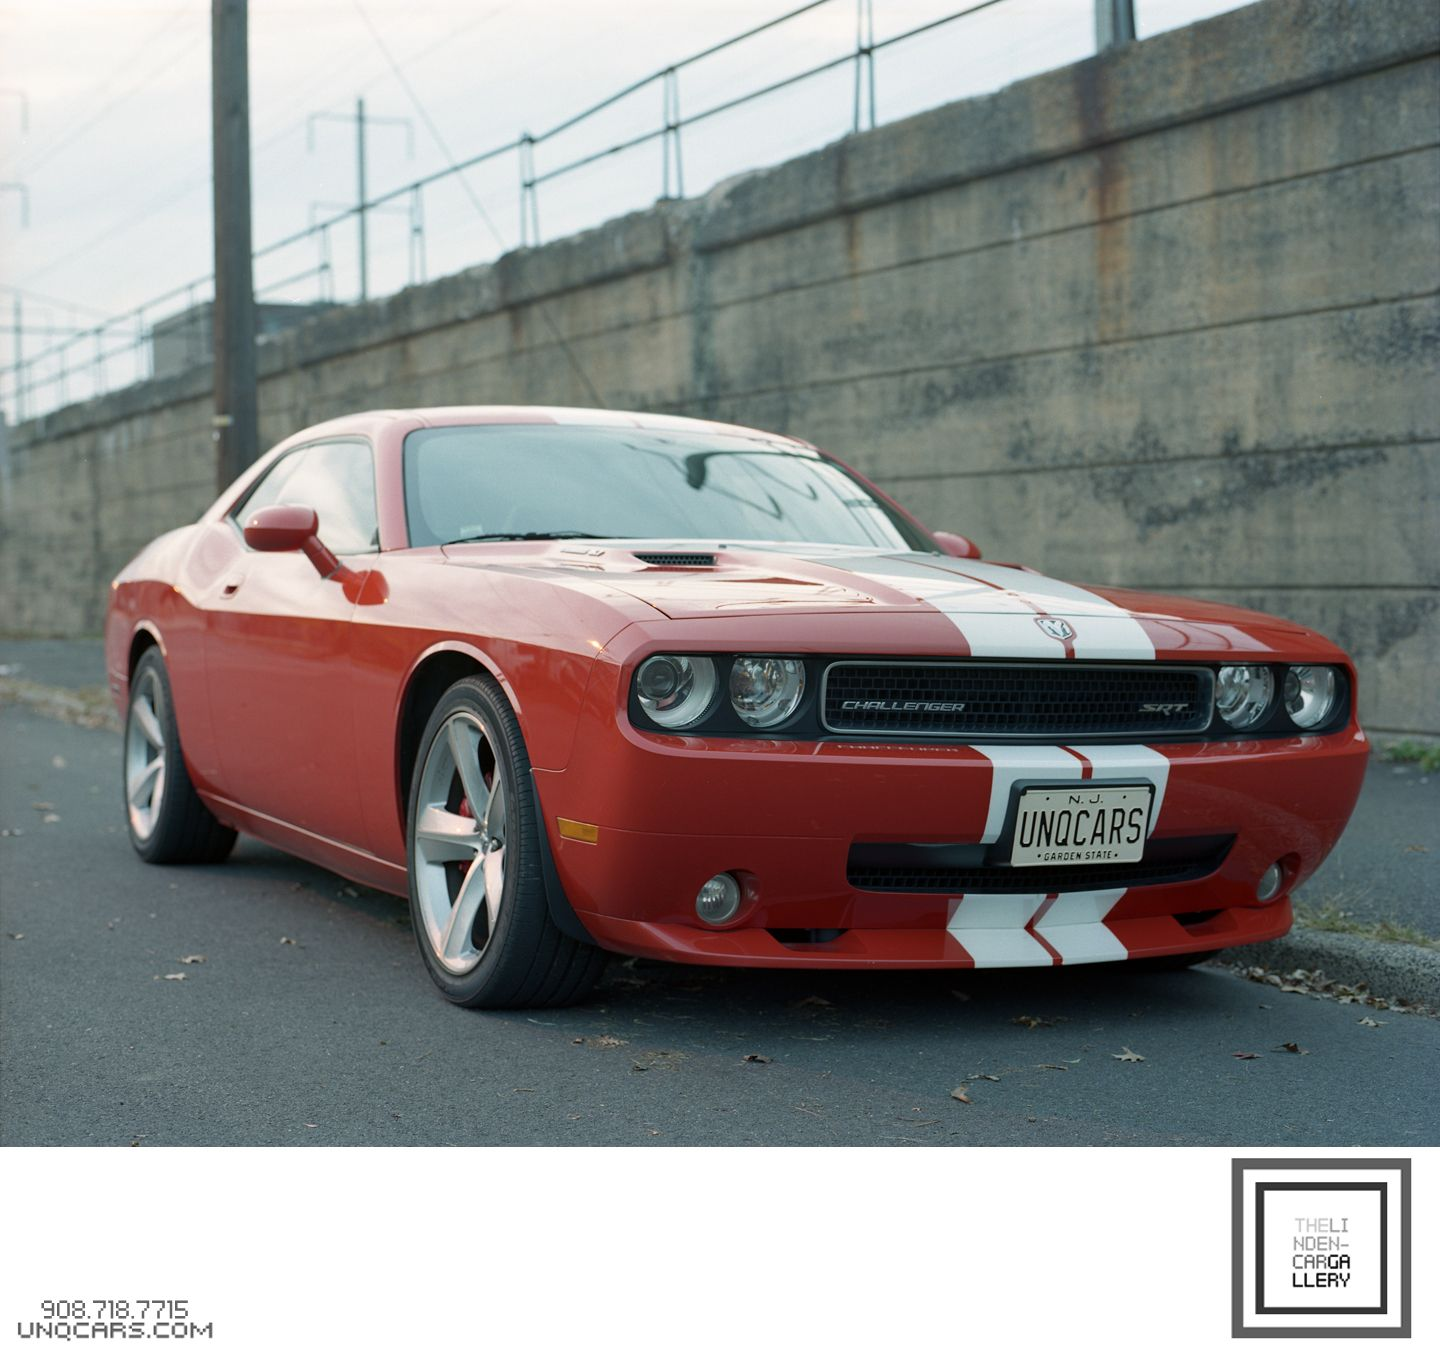 The 25 best 2010 dodge challenger srt8 ideas on pinterest 2010 dodge challenger challenger srt8 and 2014 dodge challenger srt8